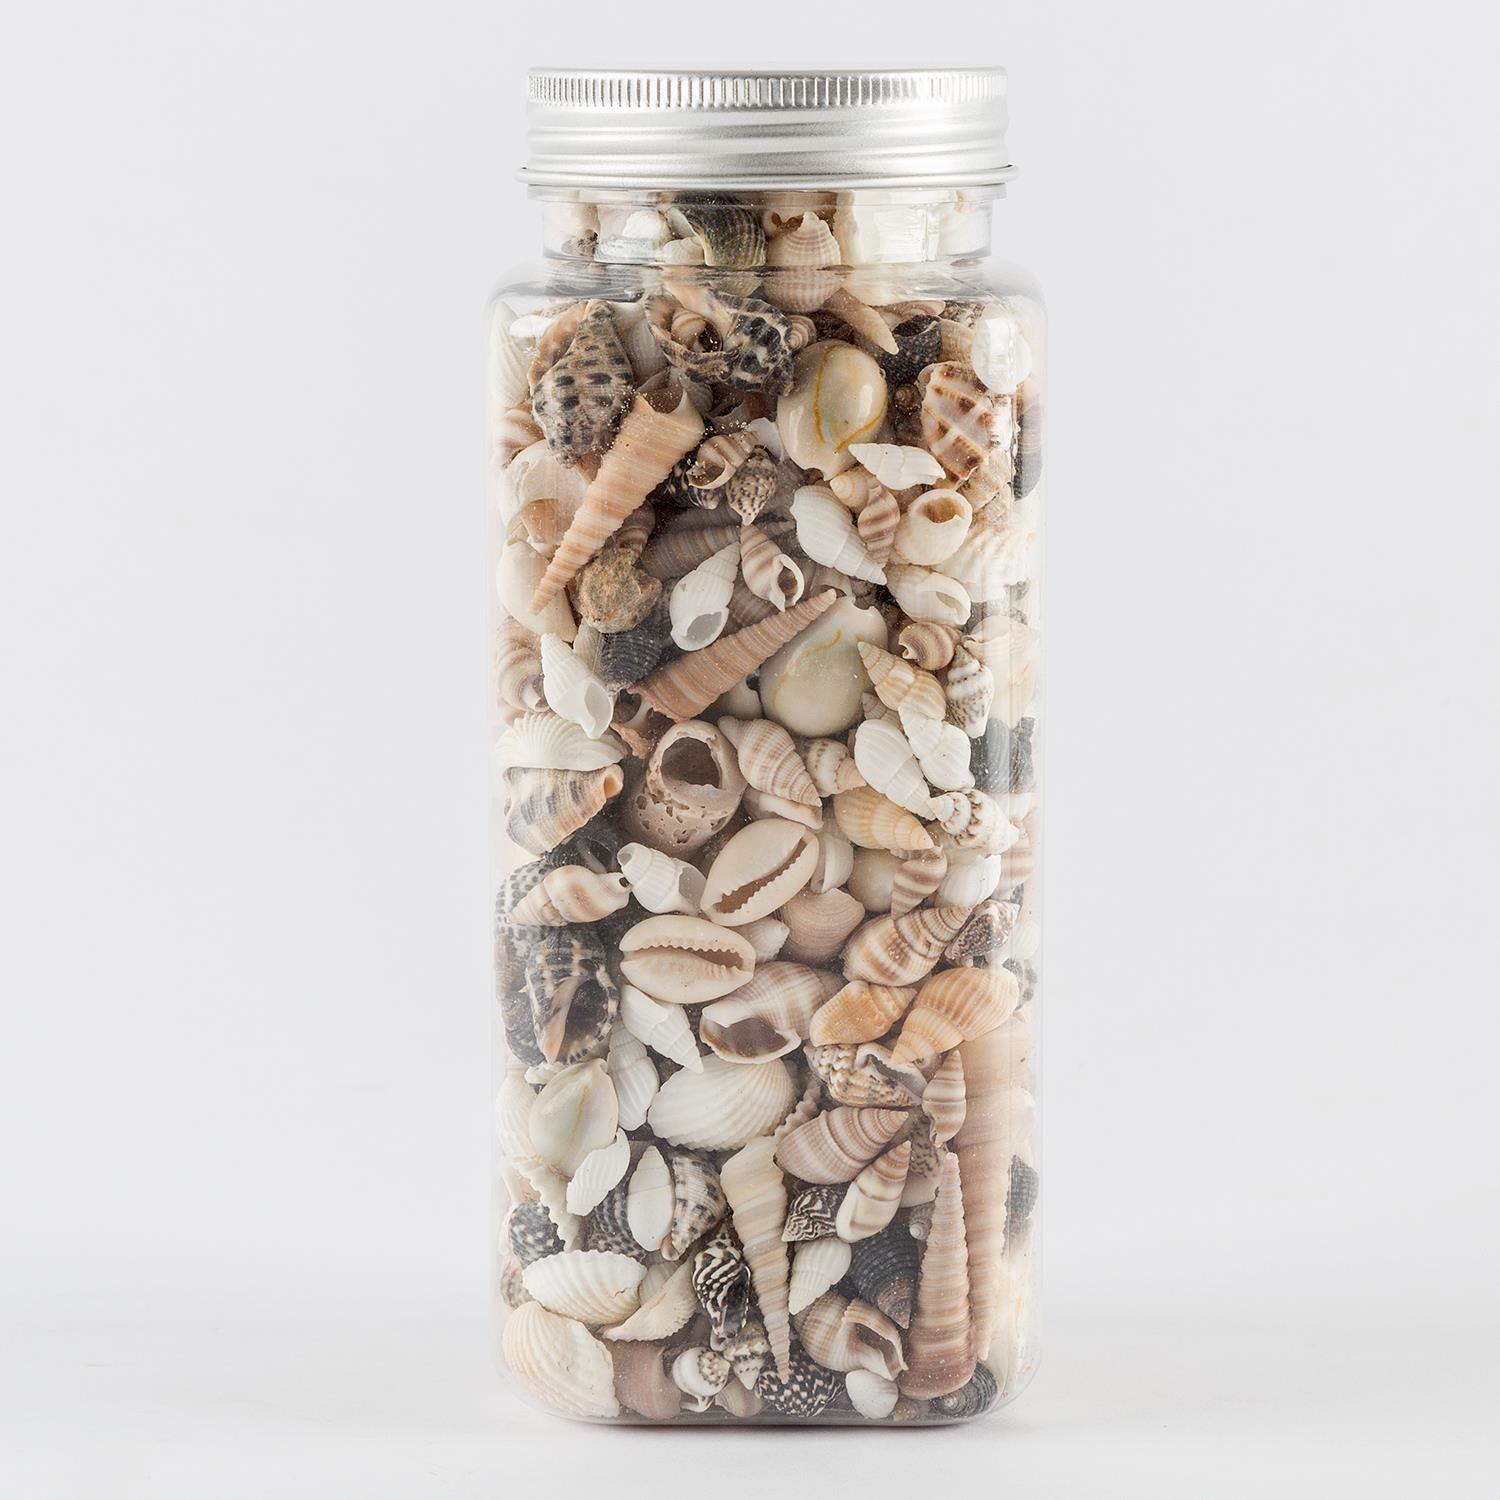 Craft Buddy 400g of Mixed Shells